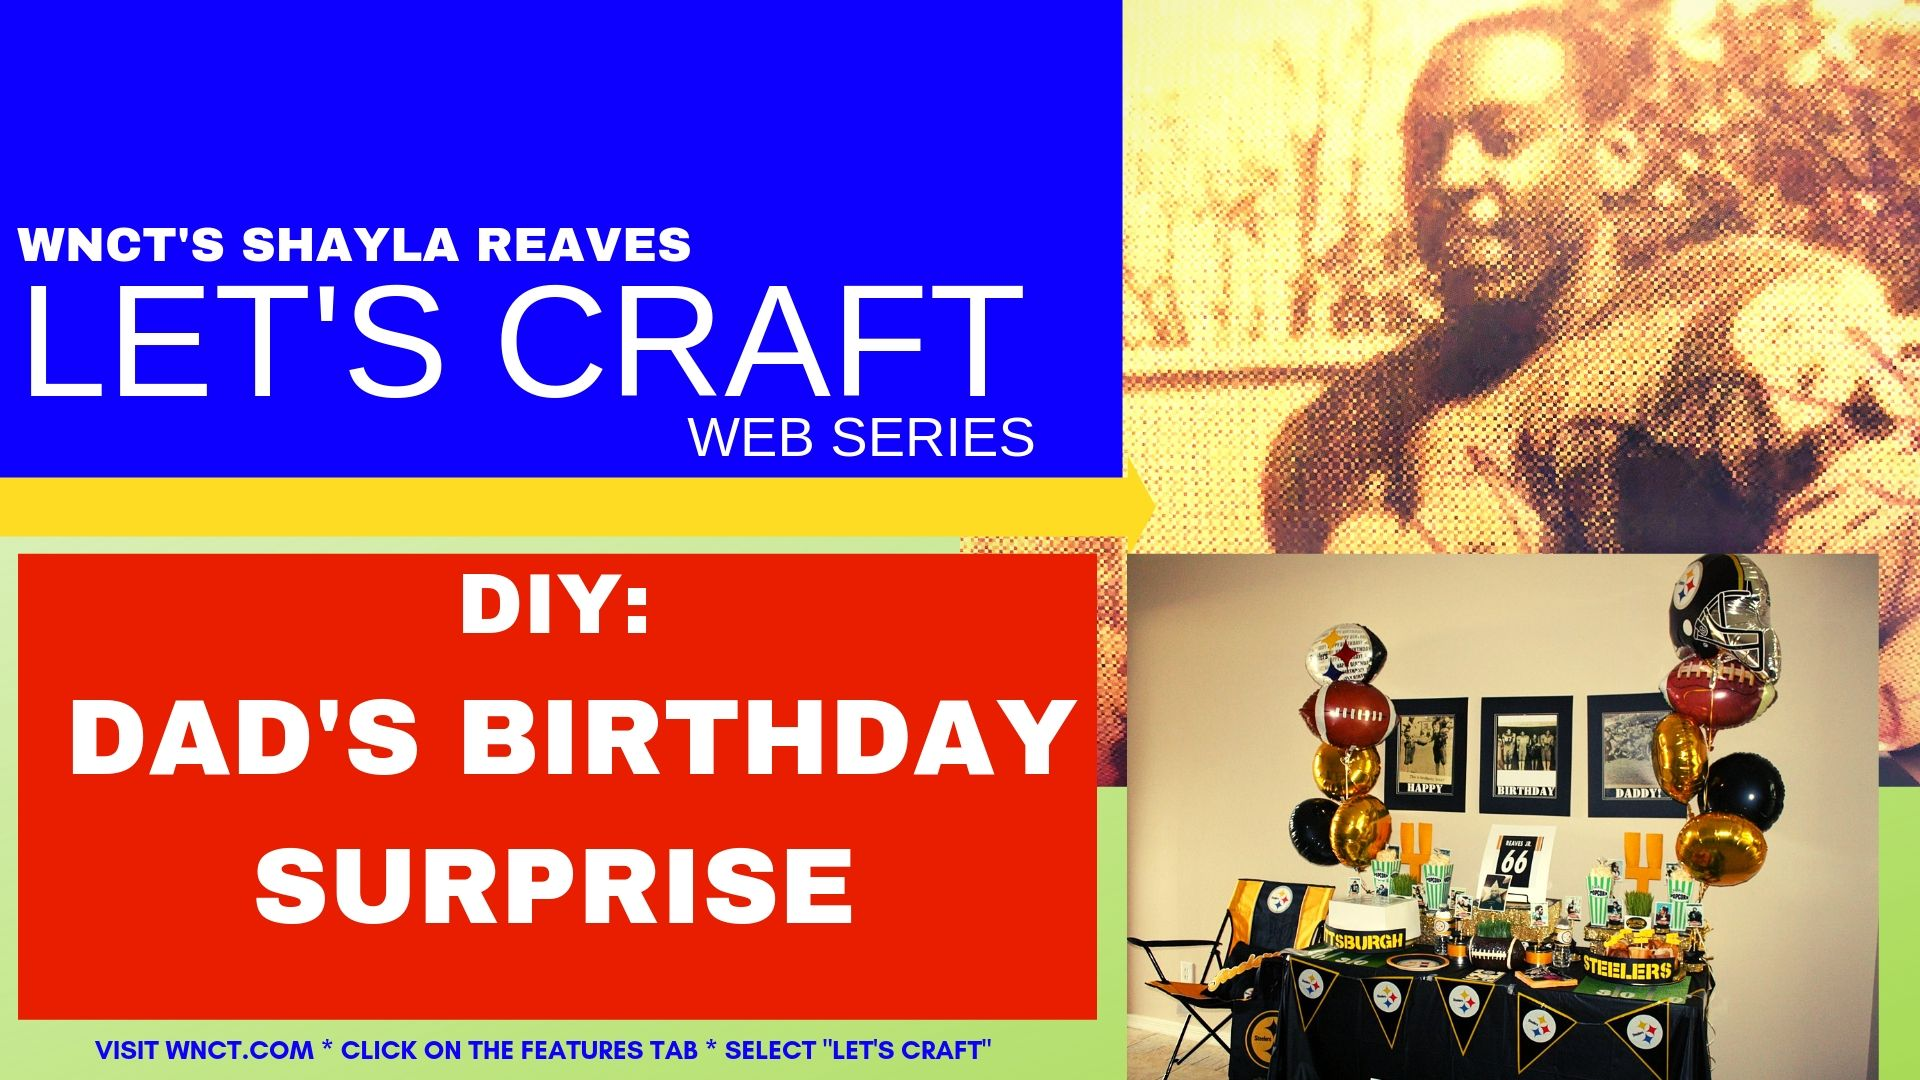 Let's Craft - Dad's Birthday Surprise